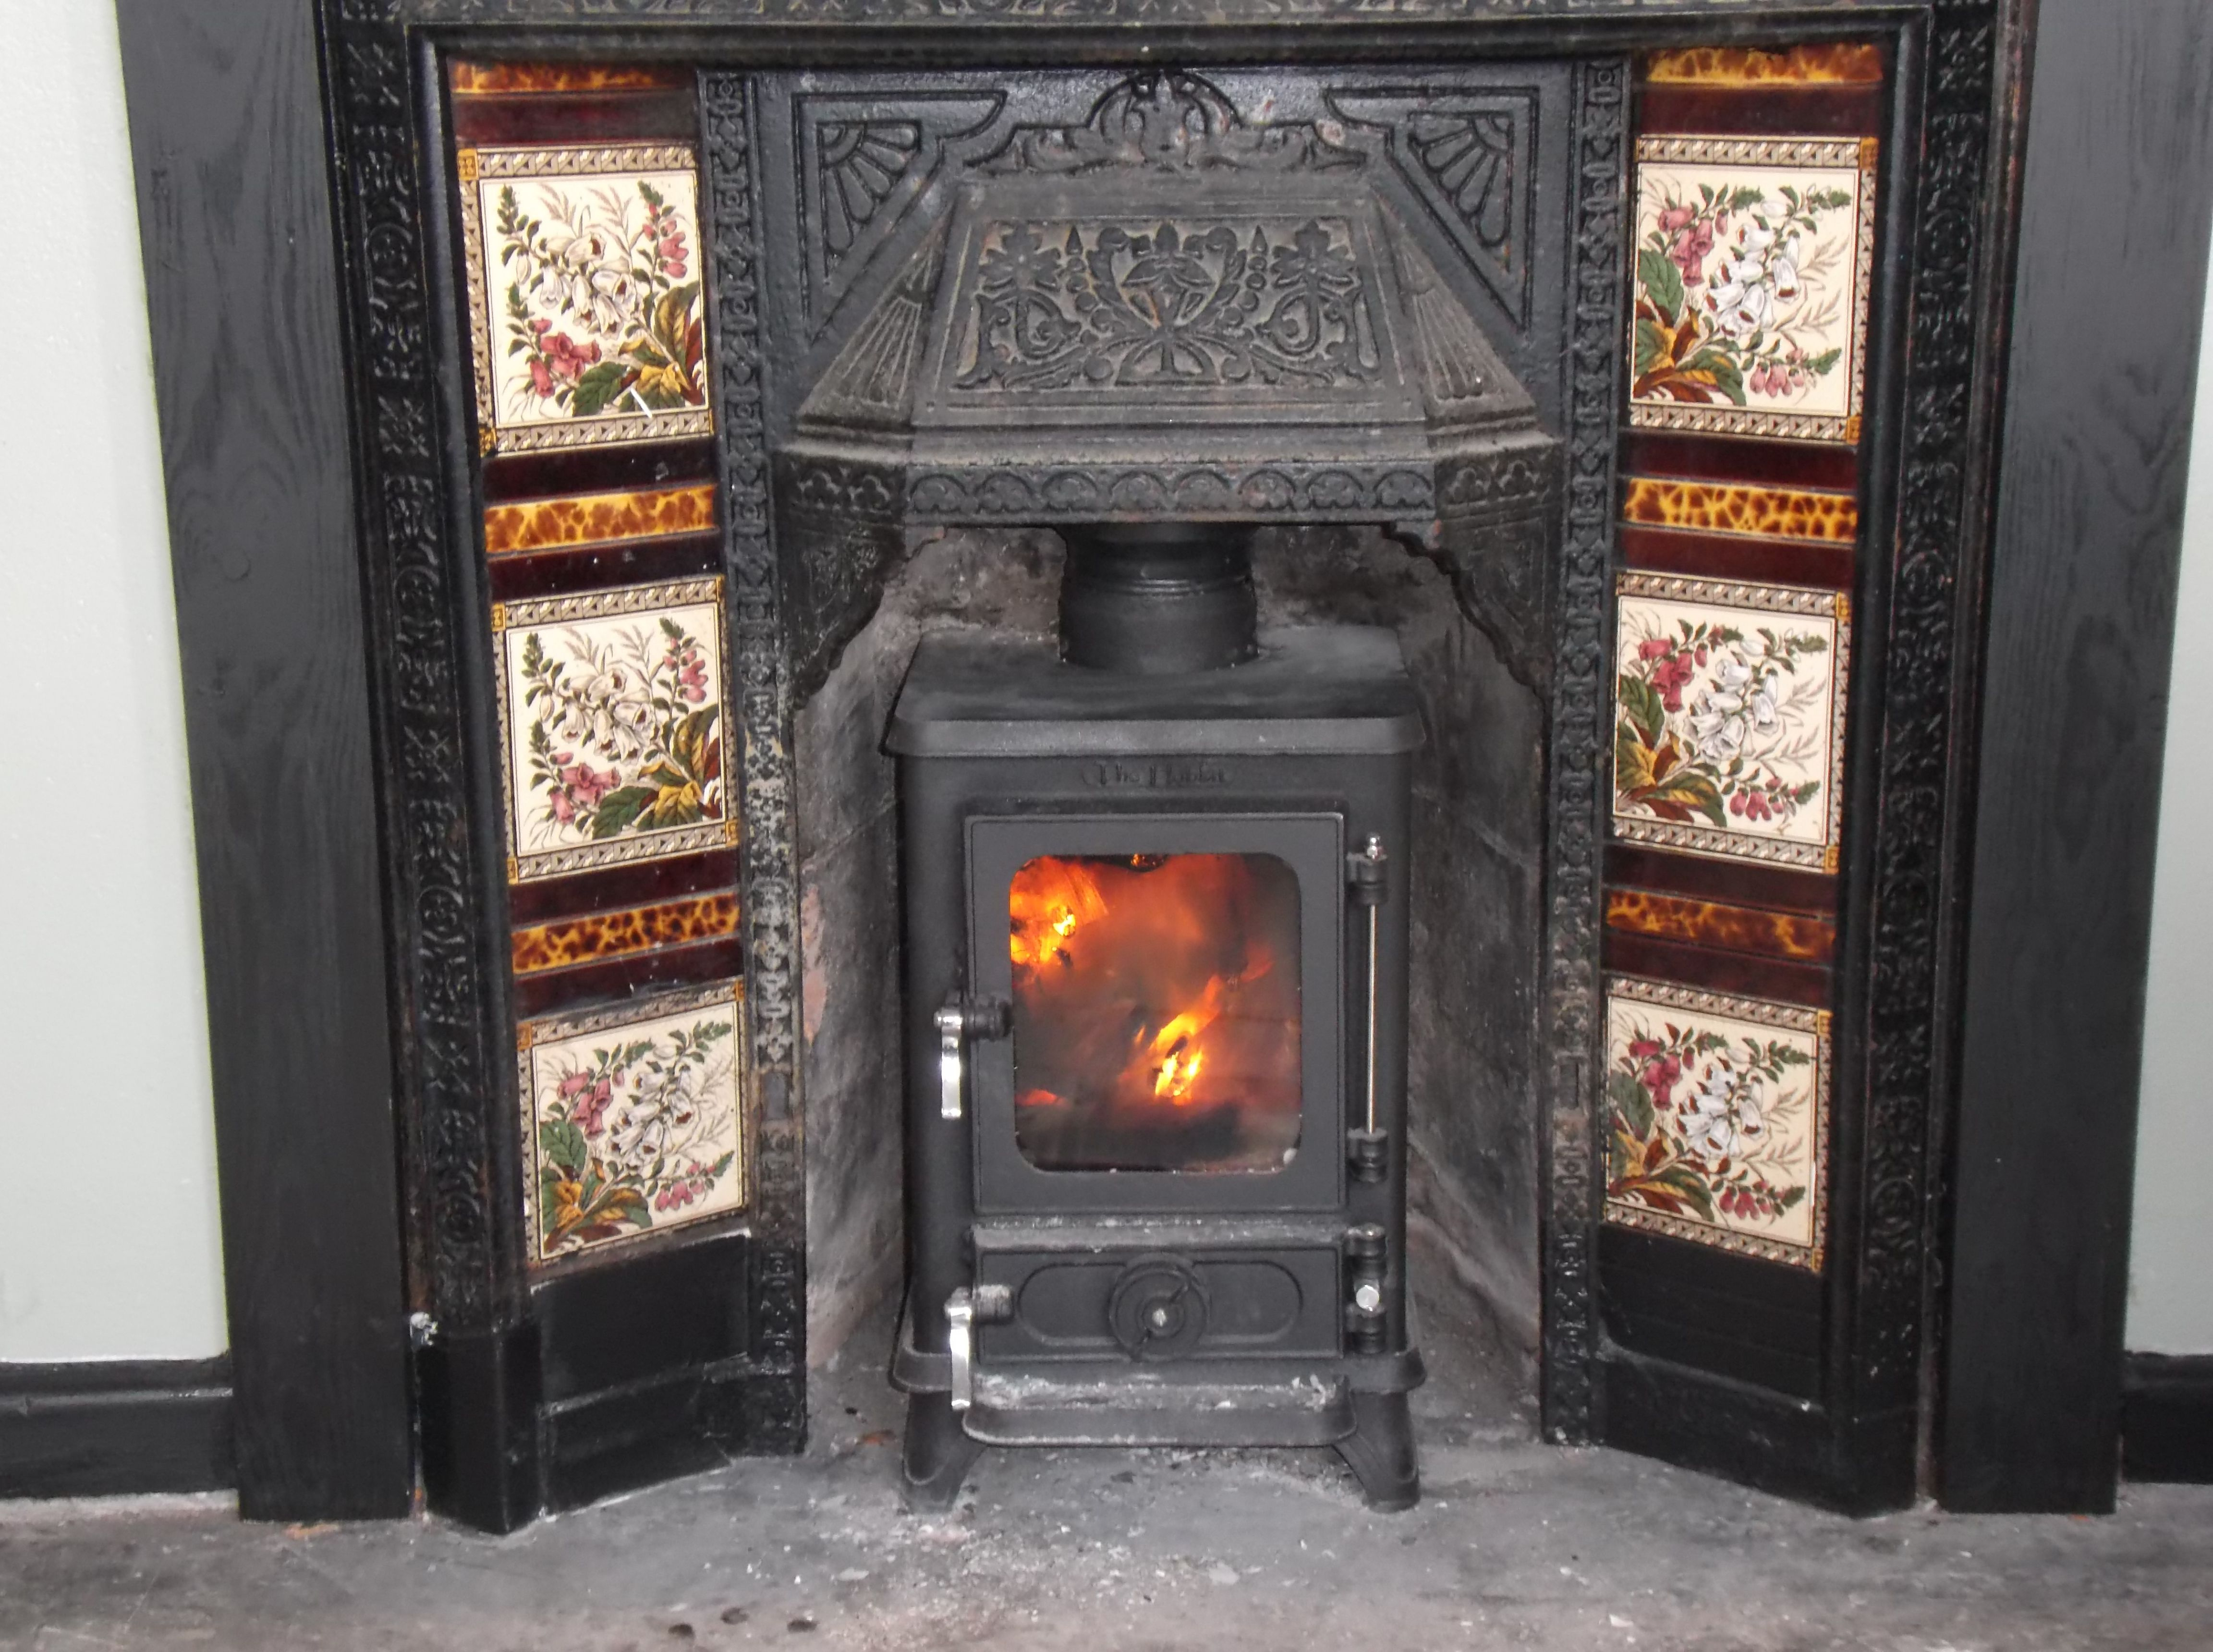 width index slateinshop antiquefireplaces vintage x victorian painted slate antique fireplace surround fireplaces ins depth reclaimed height